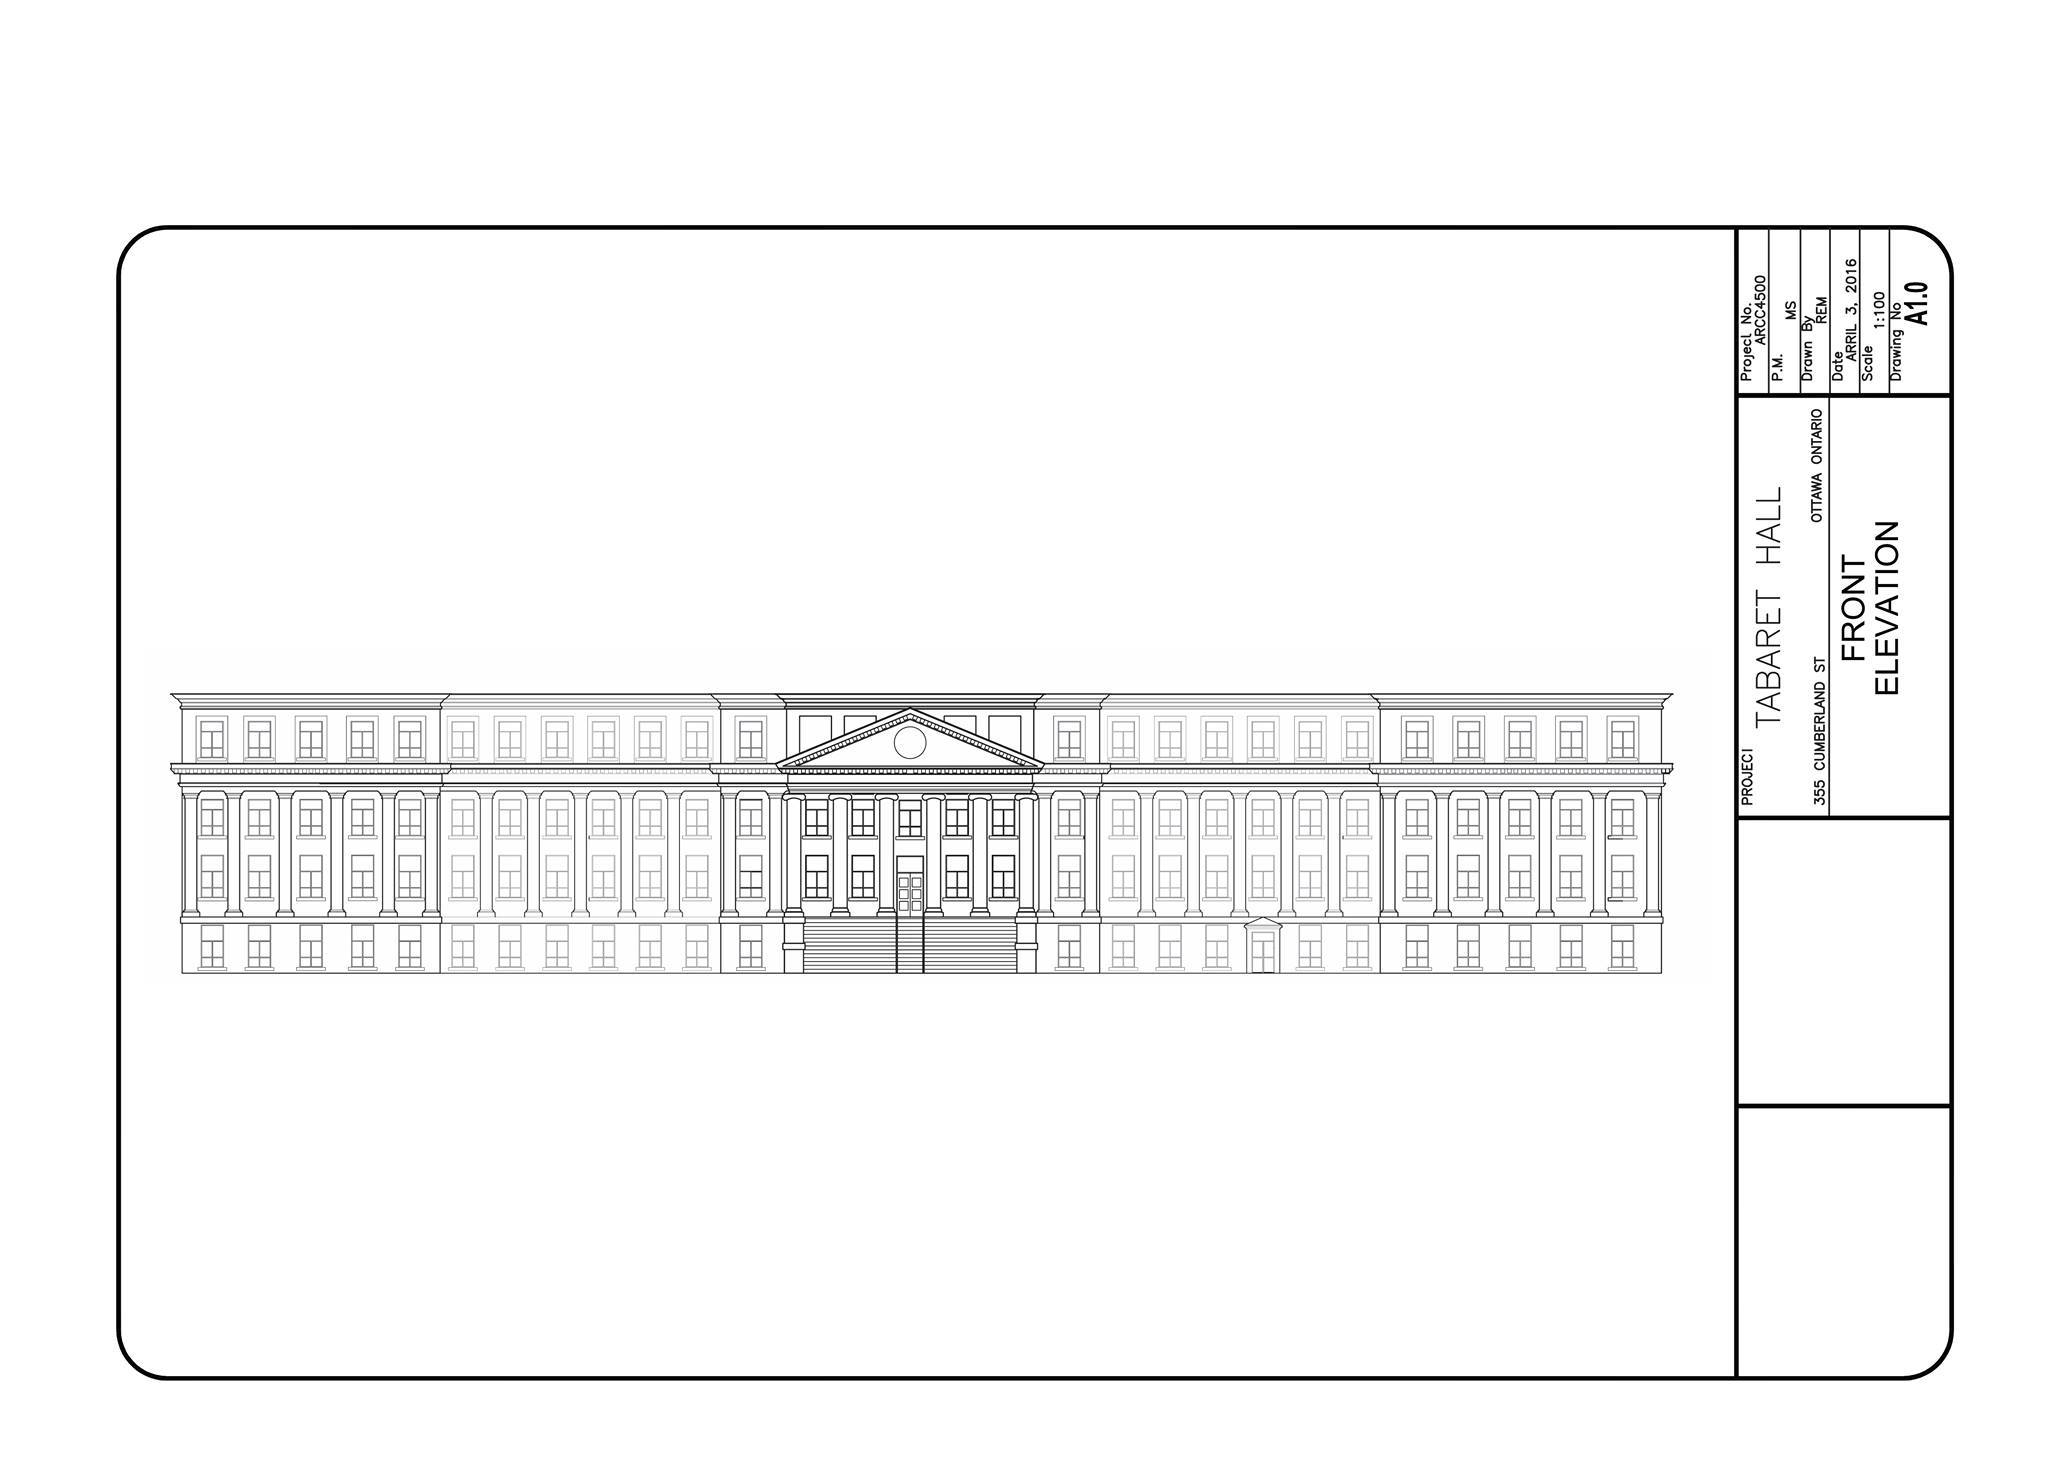 Front Elevation drawing of Tabaret Hall on uOttawa campus, done with the help of rectified photography